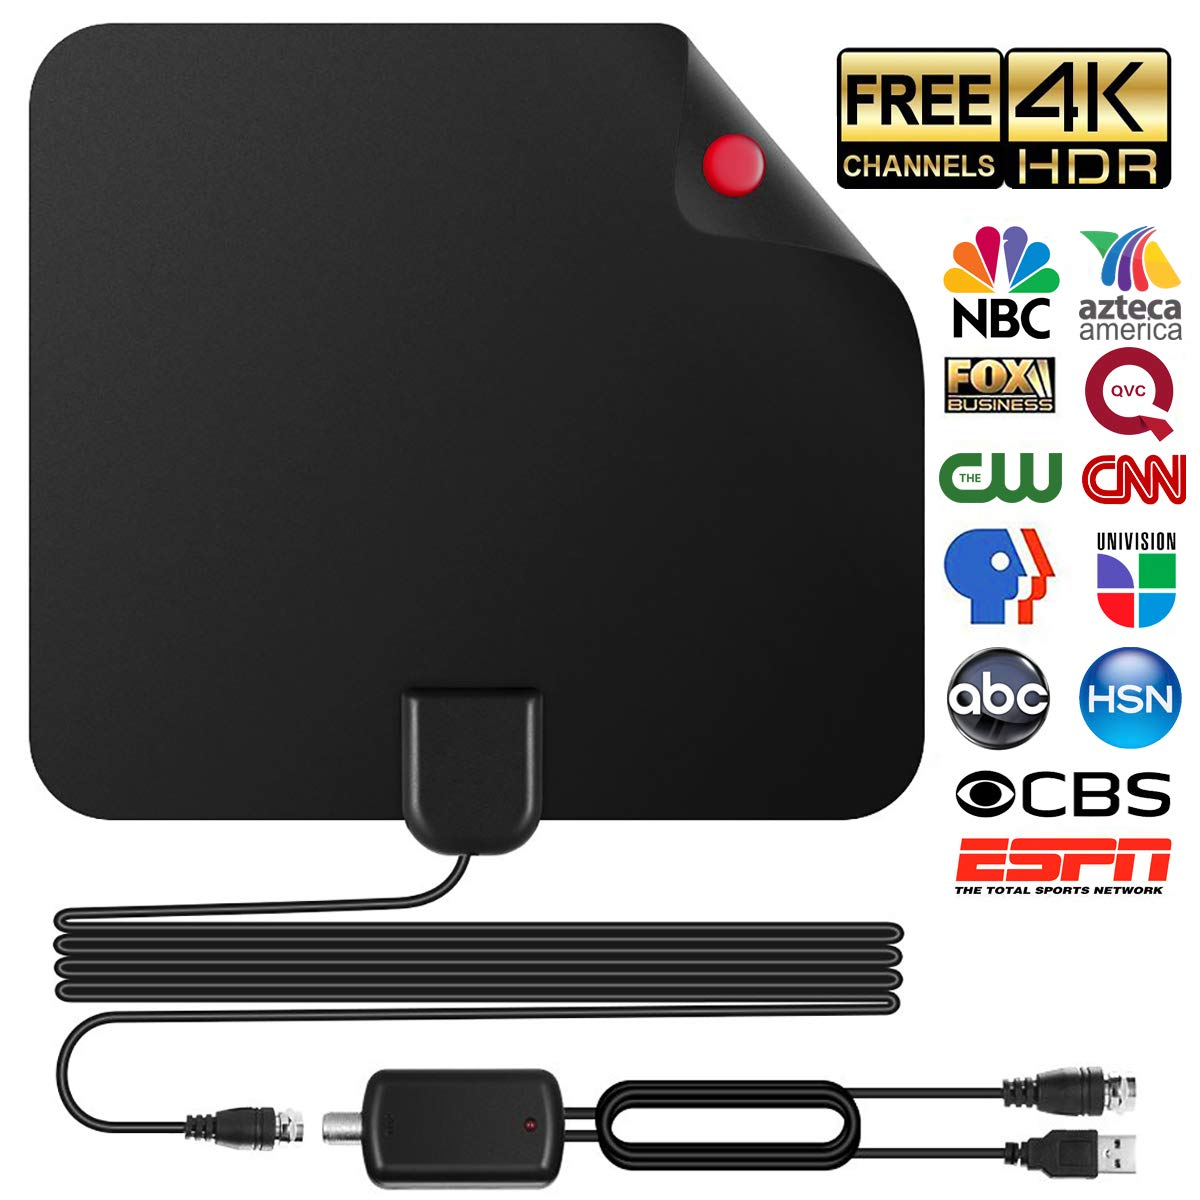 Skywire TV Antenna for Digital TV Indoor, Amplified HD Digital TV Antenna with 120 Miles Long Range, Support 4K 1080p & All Older TV's for Indoor with Powerful HDTV Amplifier